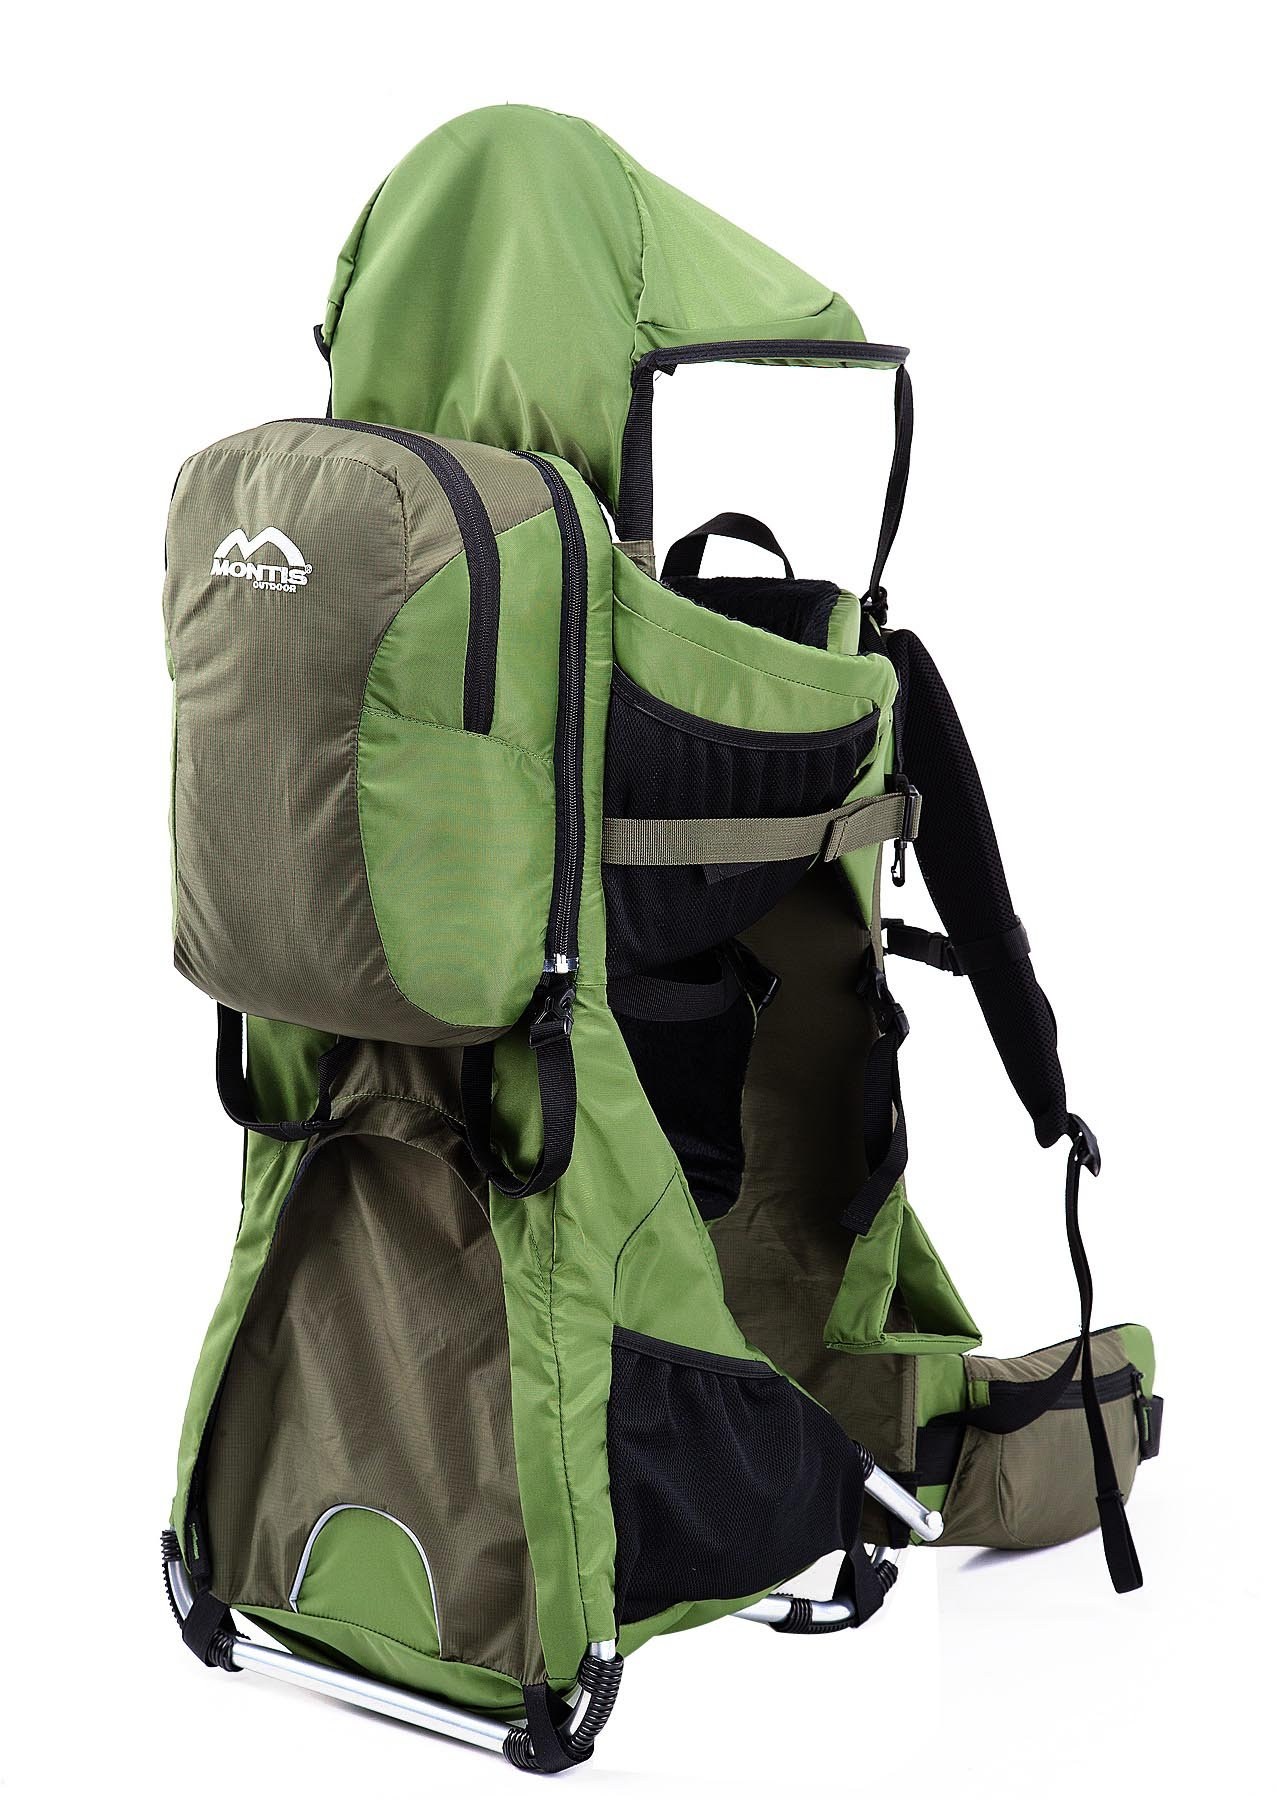 MONTIS RANGER PRO - Premium Backpack/Child Carrier - Holds up to 25kg M MONTIS OUTDOOR 89cm high, 37cm wide | Carries loads up to 25kg, seat bag 30L | Approx. 2.3kg (without extras) Easy-clean outer material | Fully-adjustable, padded 5-point child harness Super soft plush lining, raised wind guard, can be loaded from both sides | Fully-adjustable carry support system, additional ergonomic options for women | Comfortable waist belt for extended wearing with side pockets 2